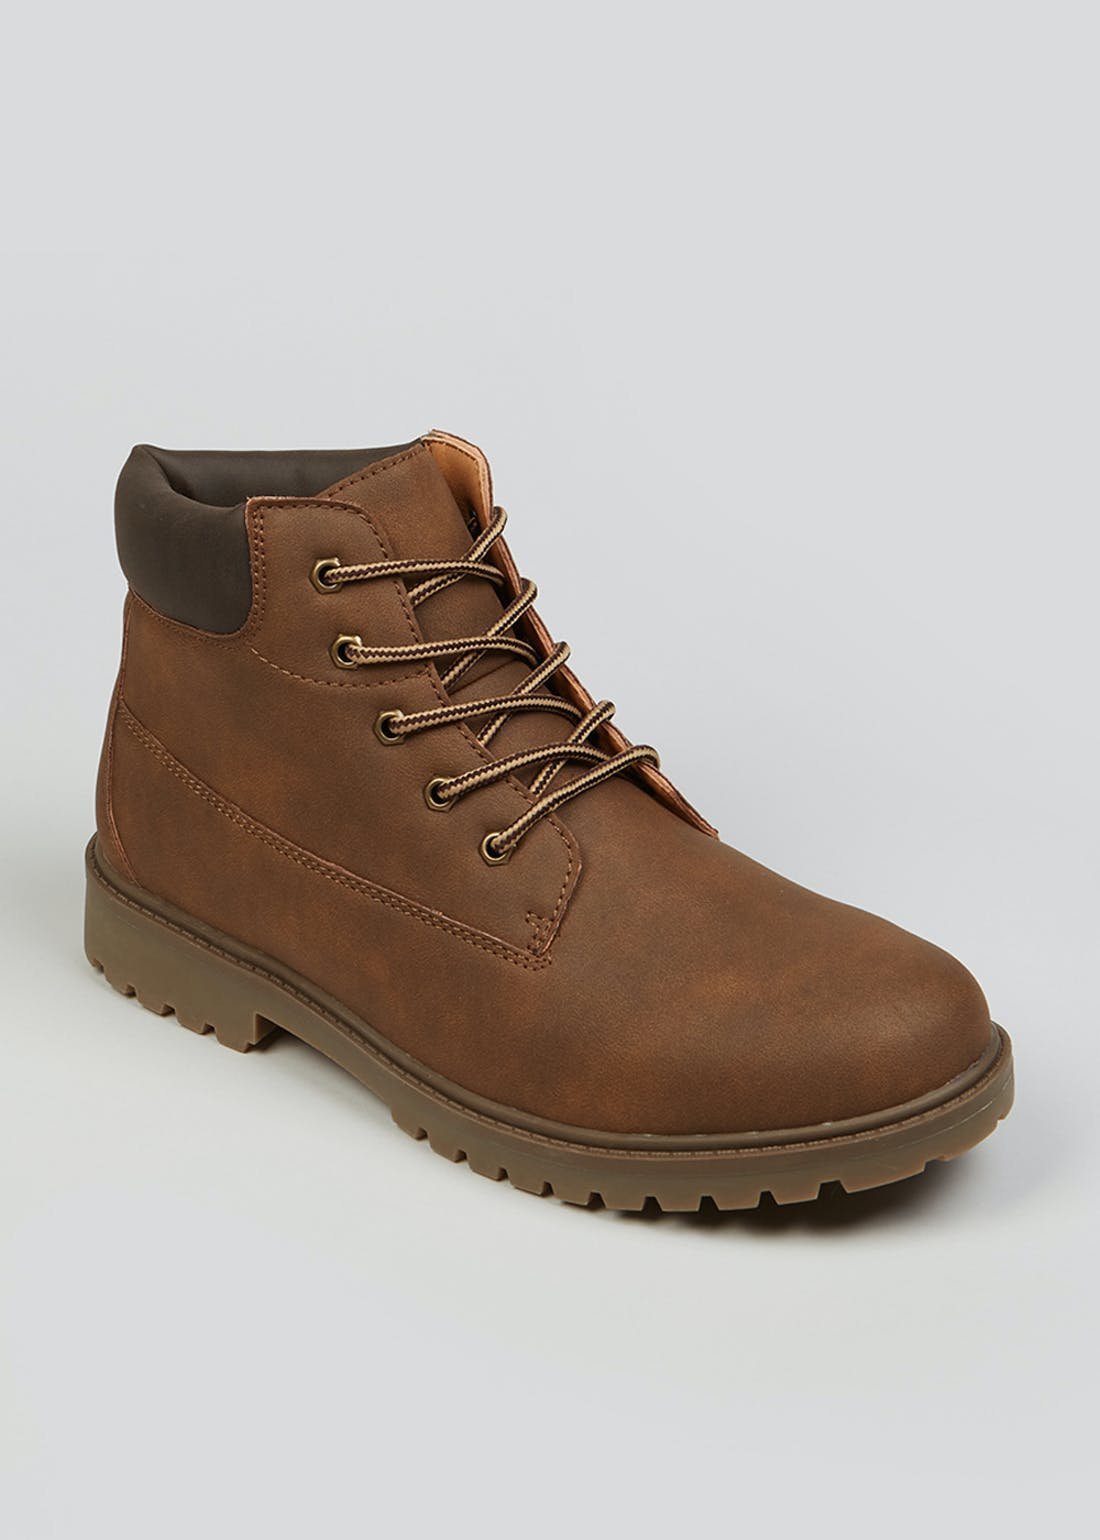 Brown Lace Up Cleated Worker Boots